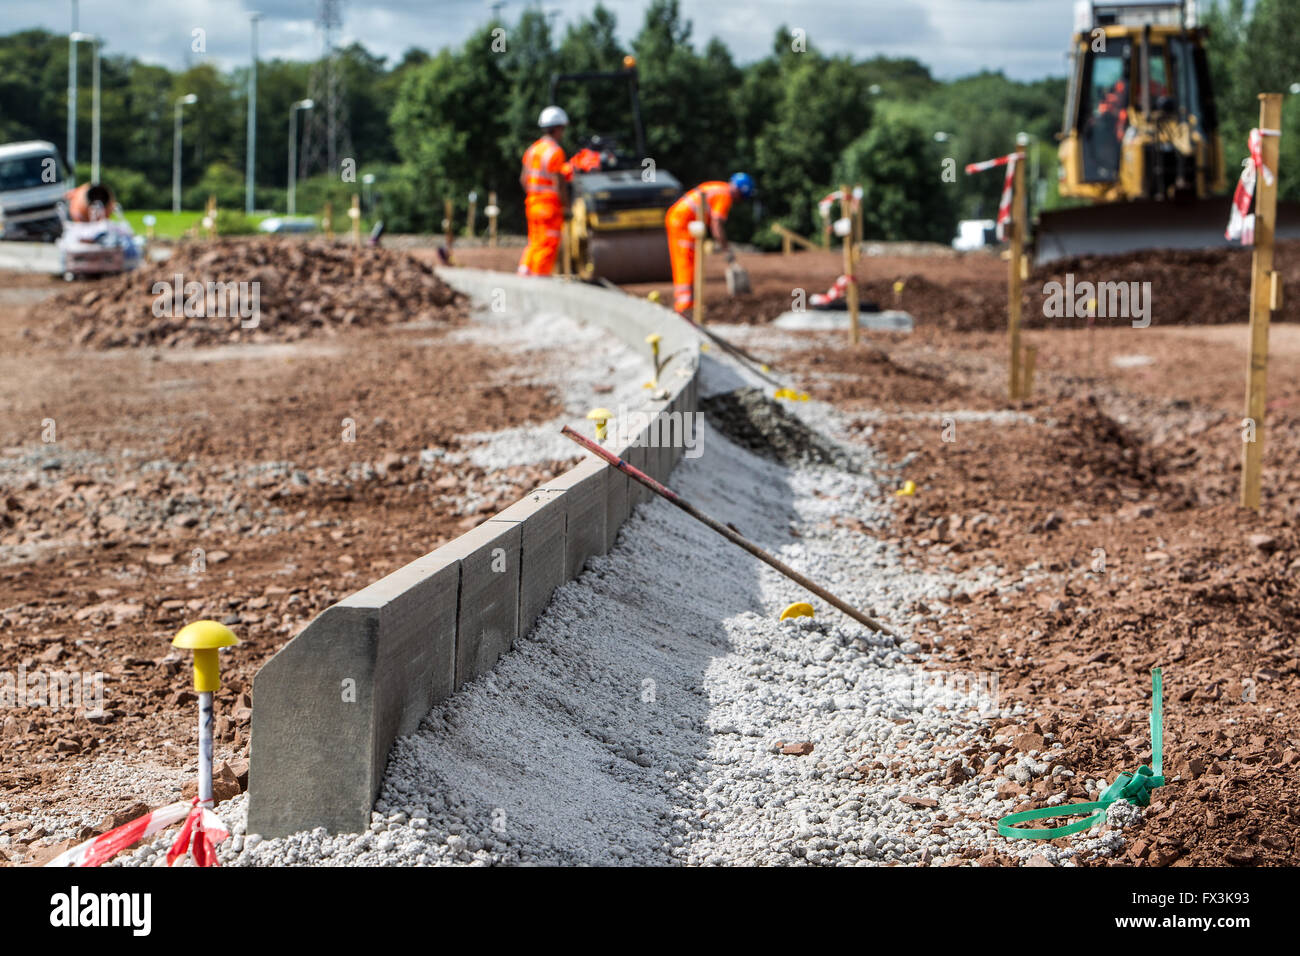 Surveyors working on new road construction - Stock Image